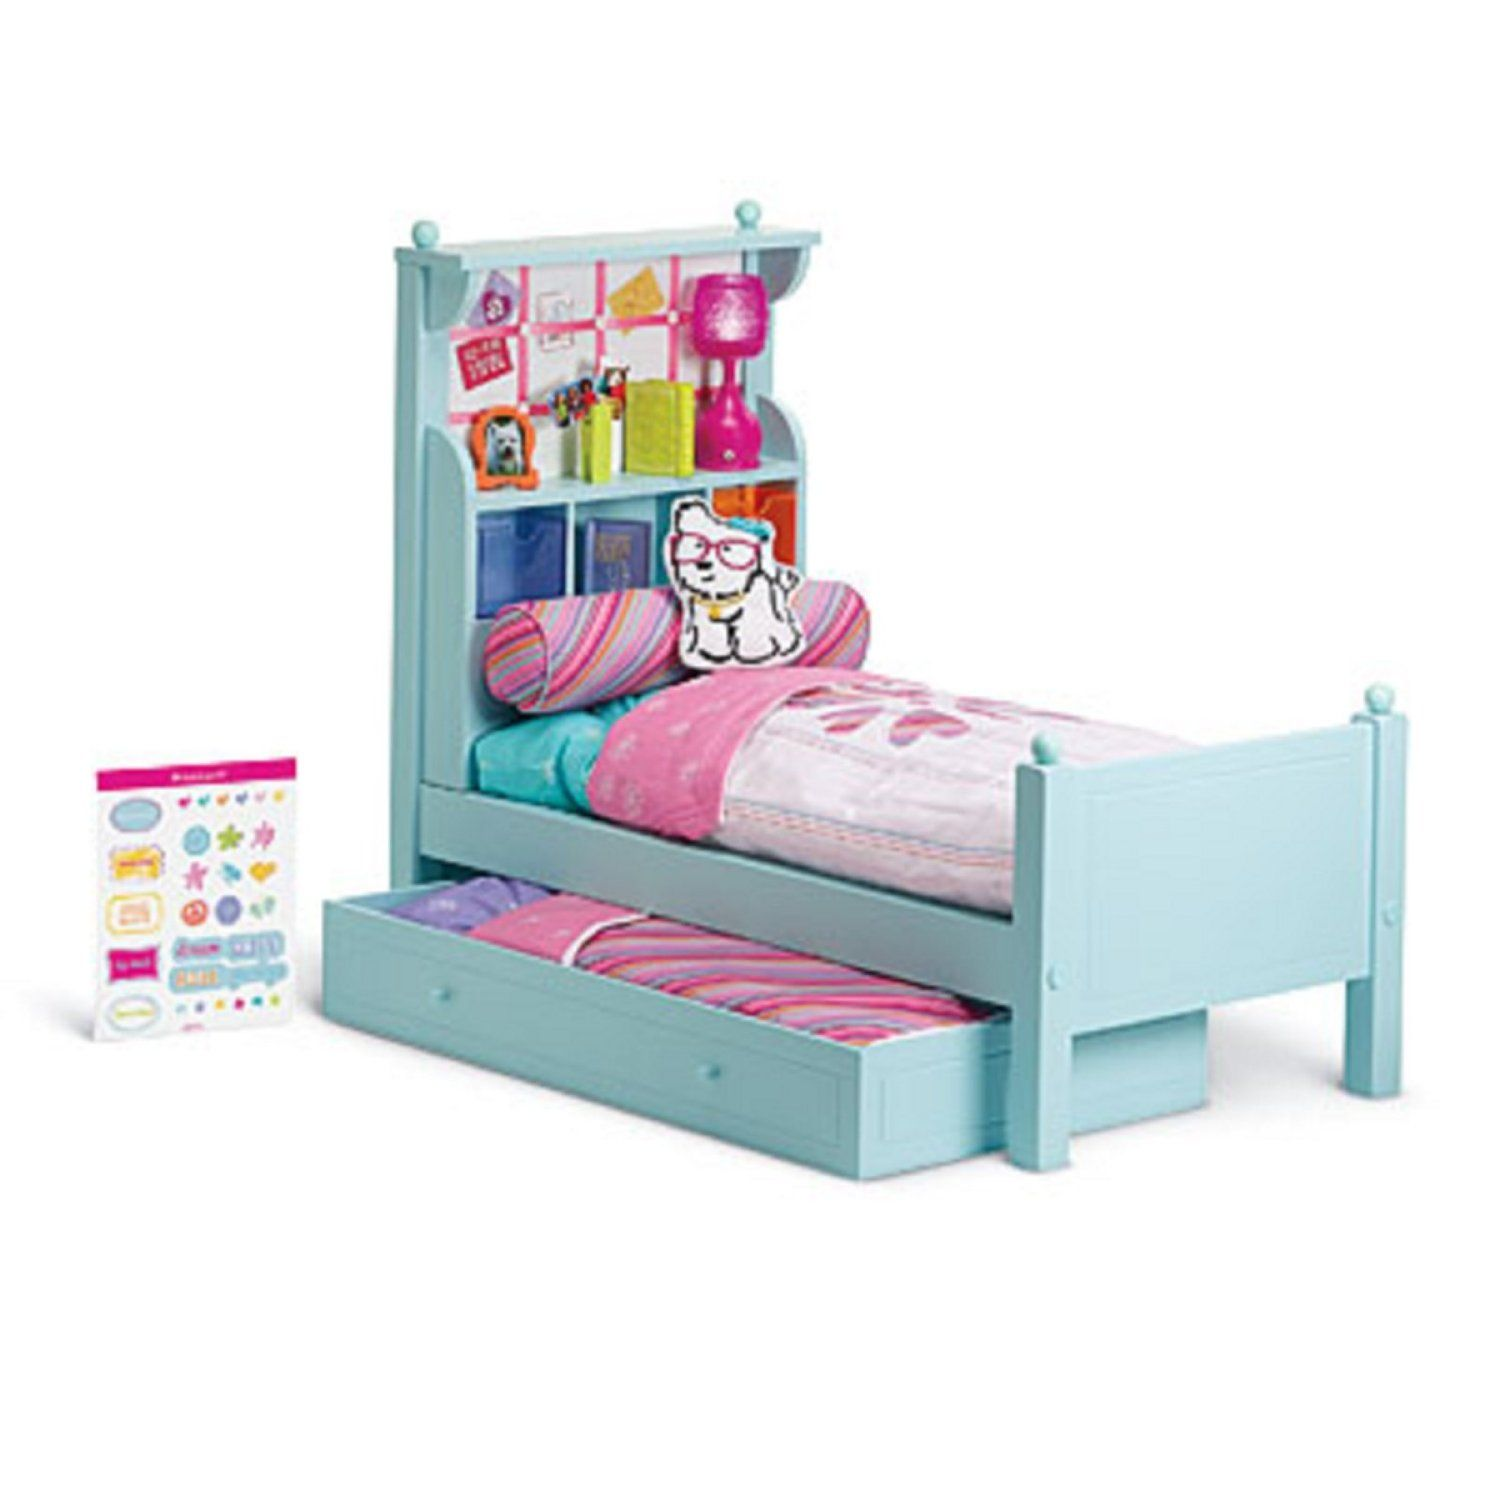 of doll contemporary both designed in together elegant bed puts beds which dreamland bunk pin them